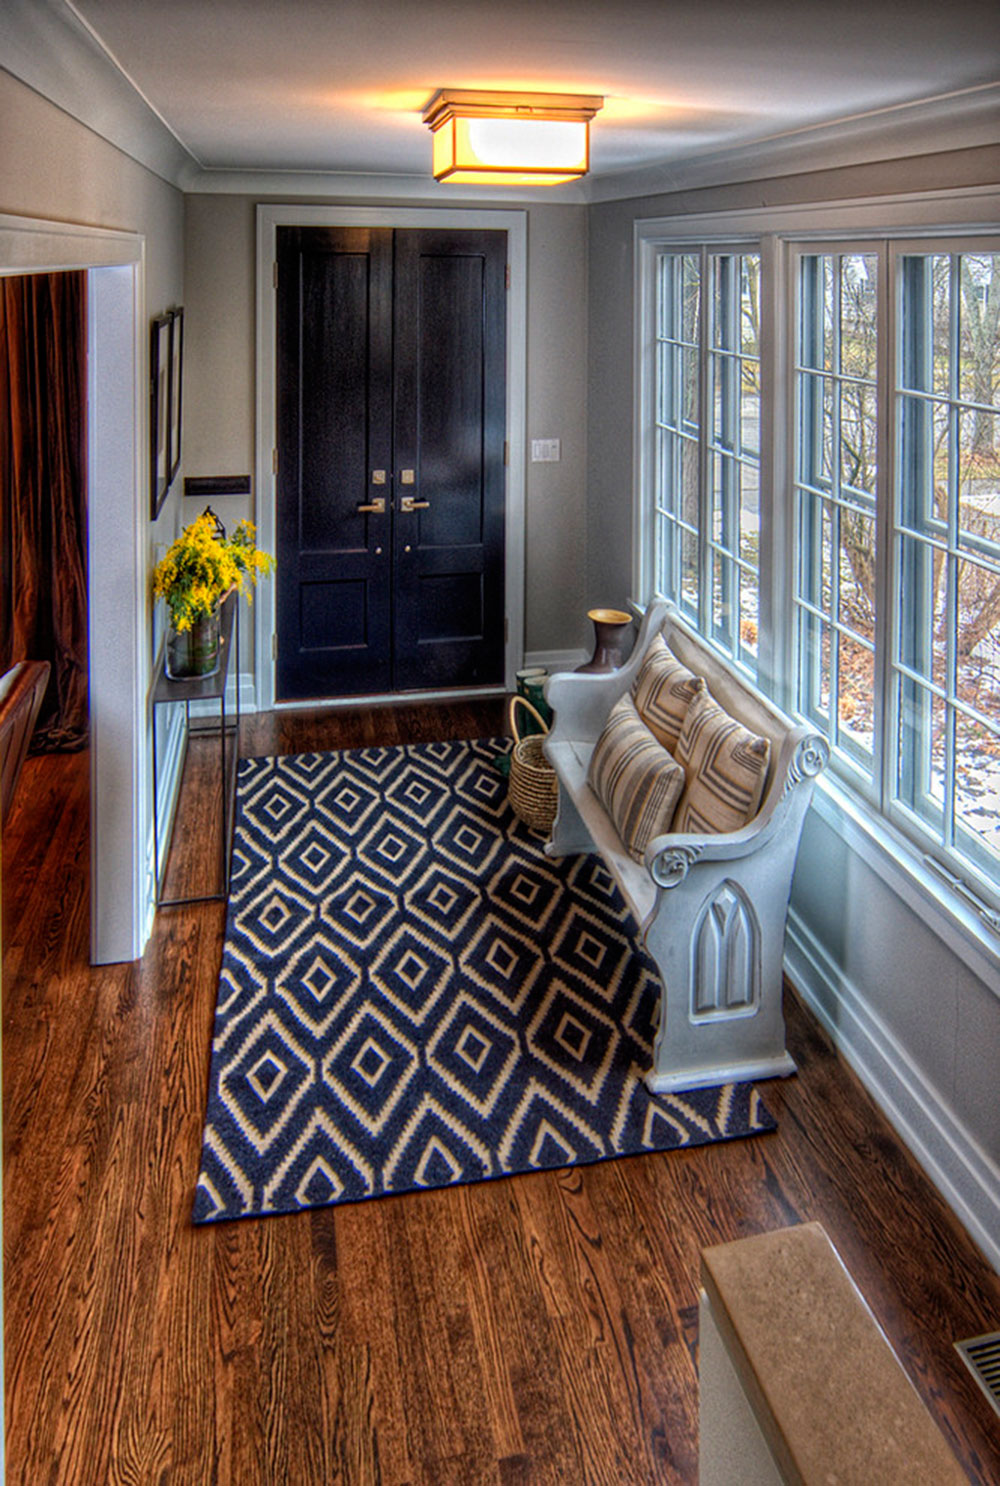 How To Decorate With Antique Rugs